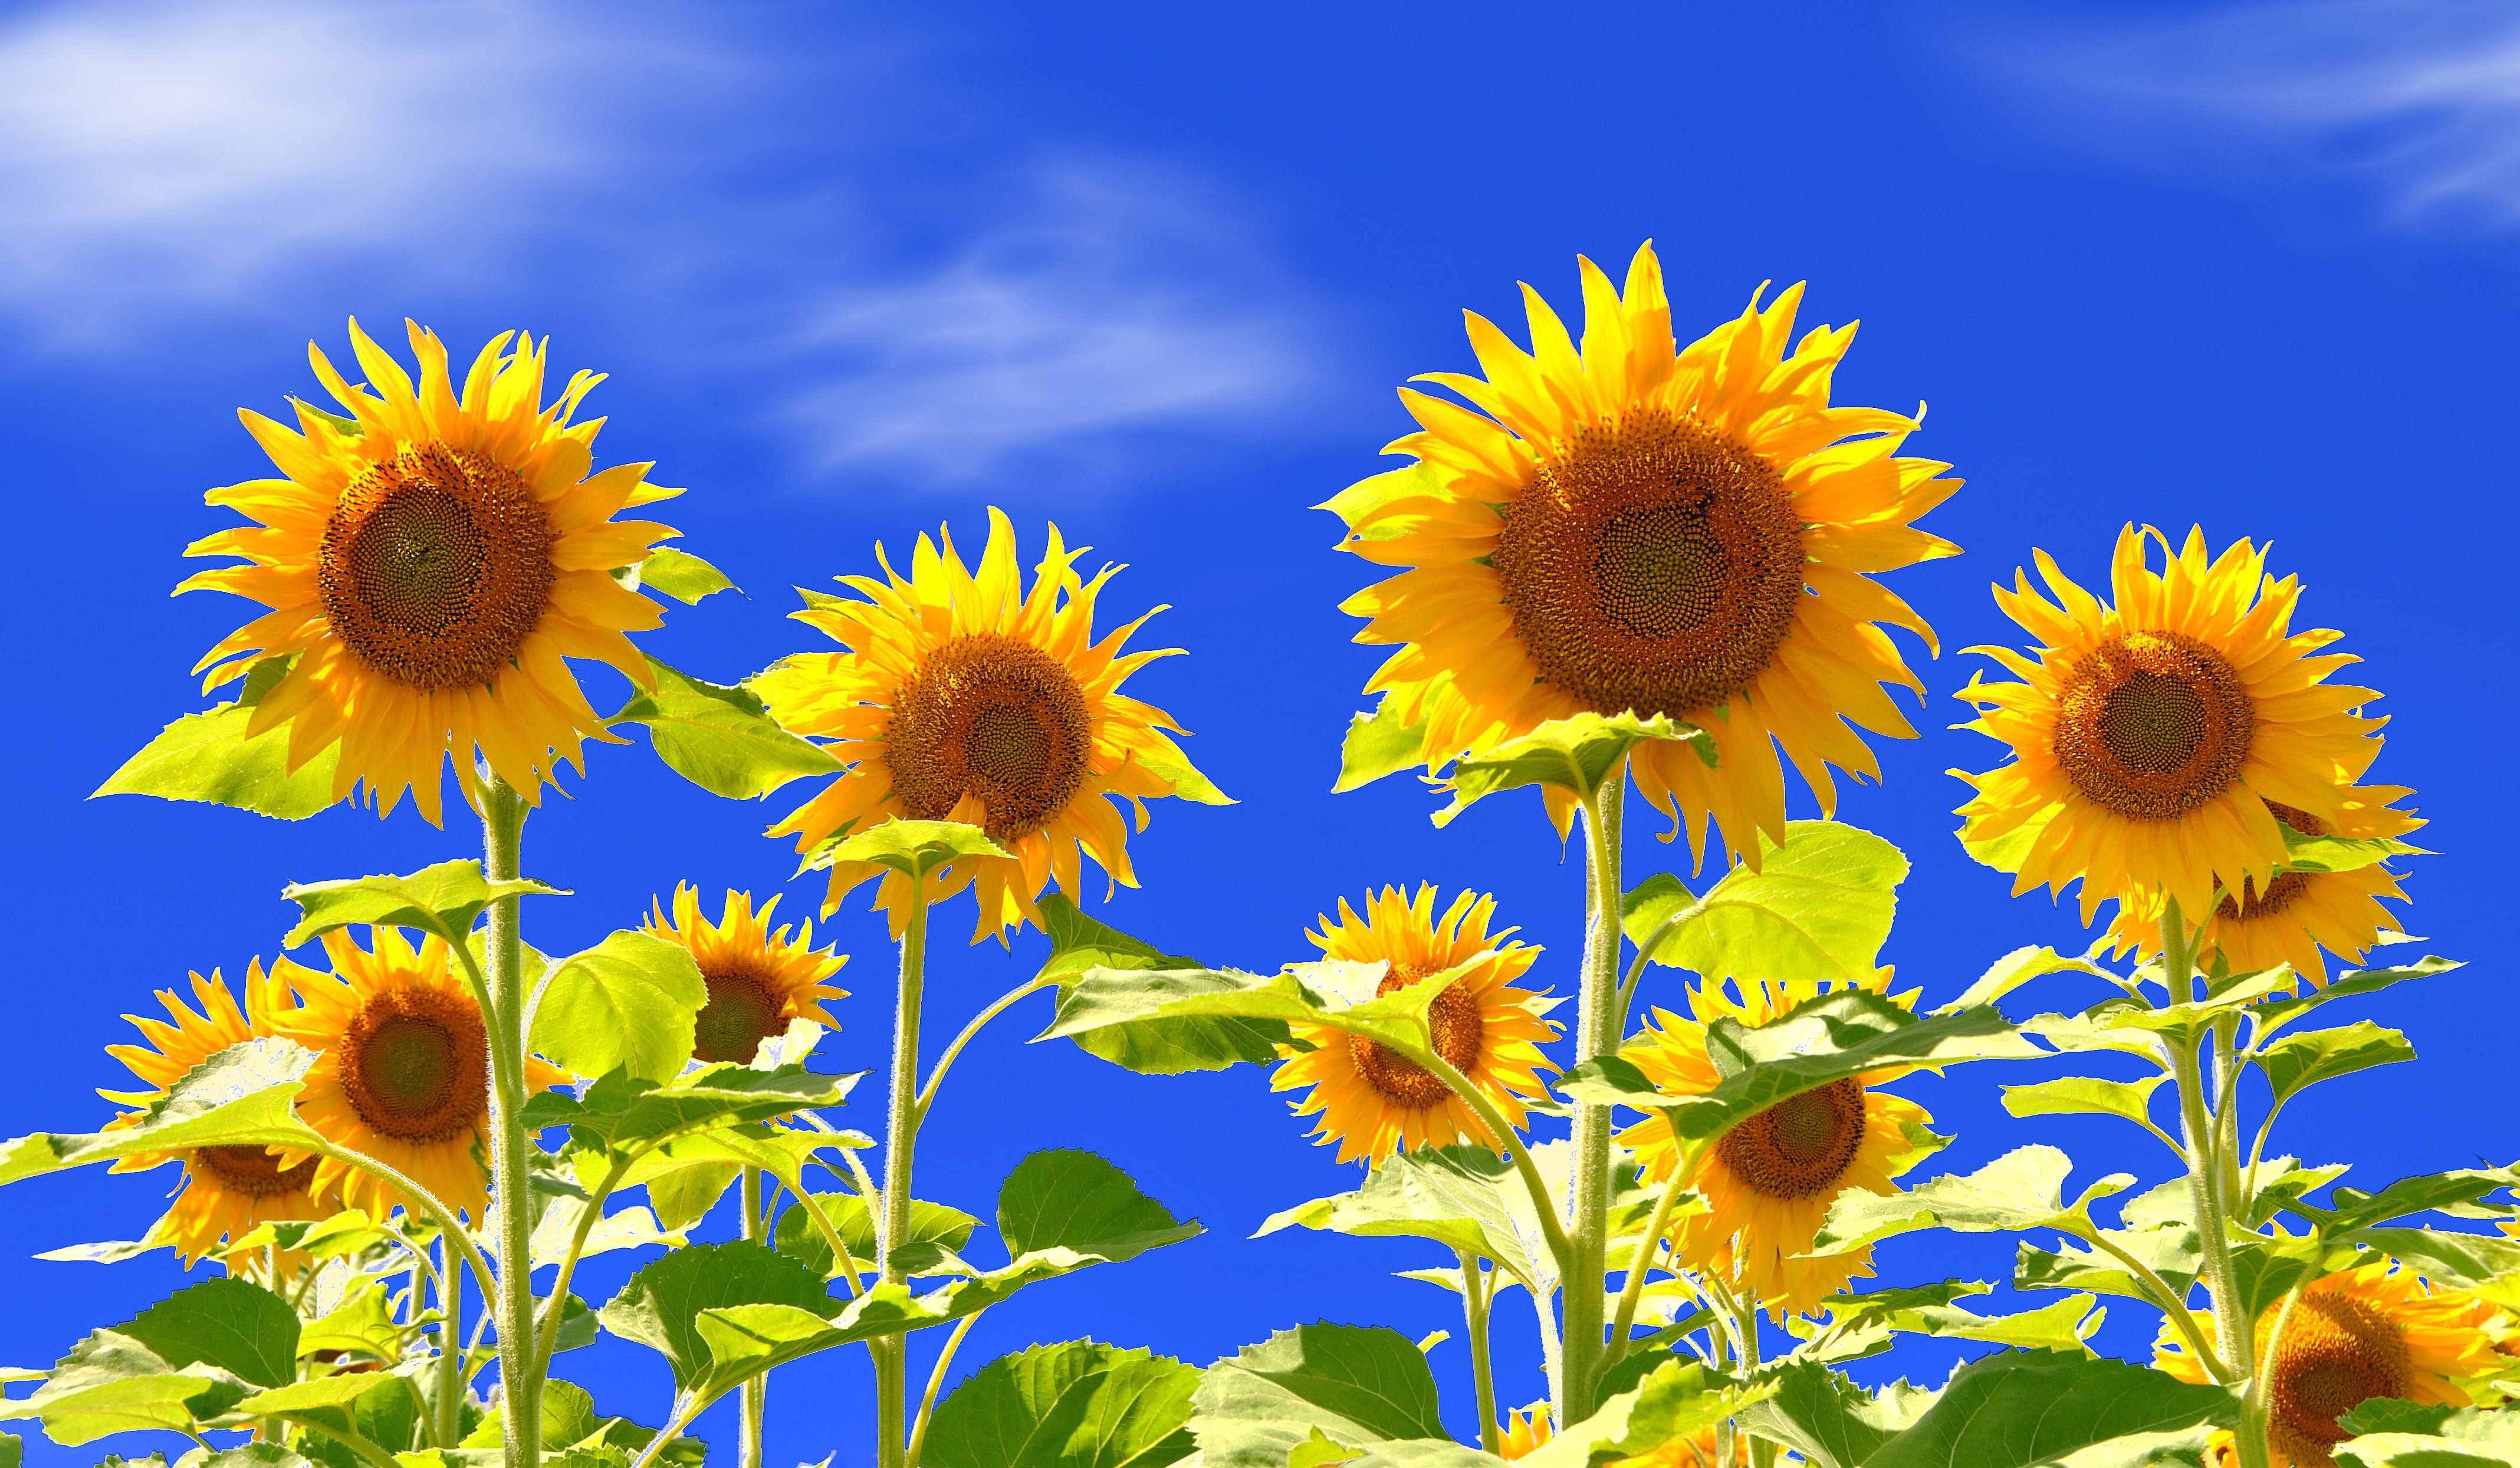 sunflowers Sky Field Wallpapers HD Desktop and Mobile